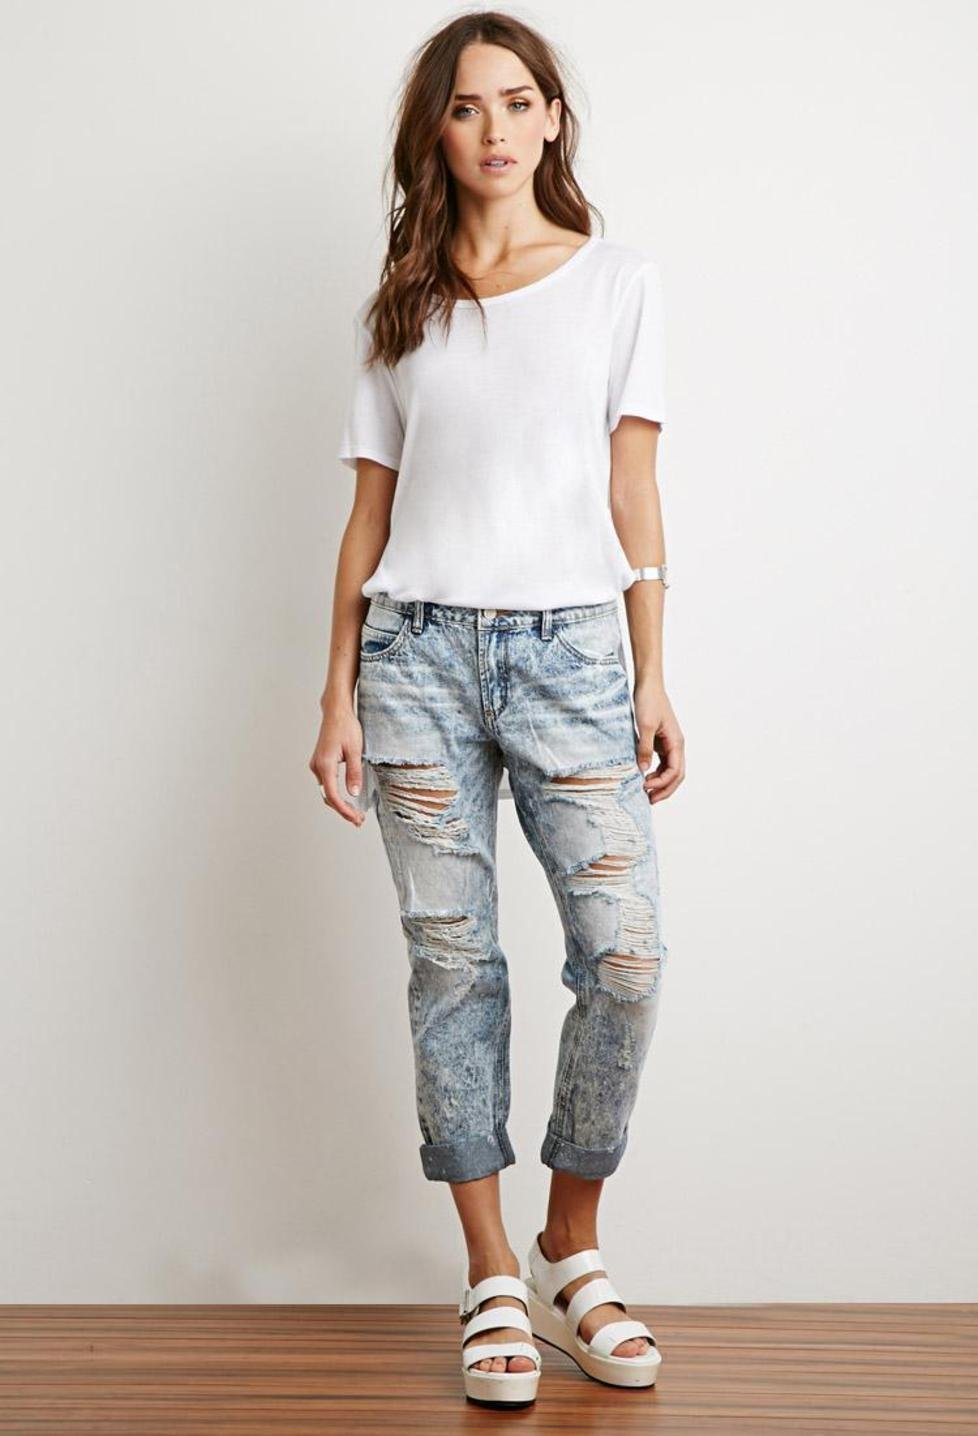 The model in Distressed Acid Wash Boyfriend Jeans.